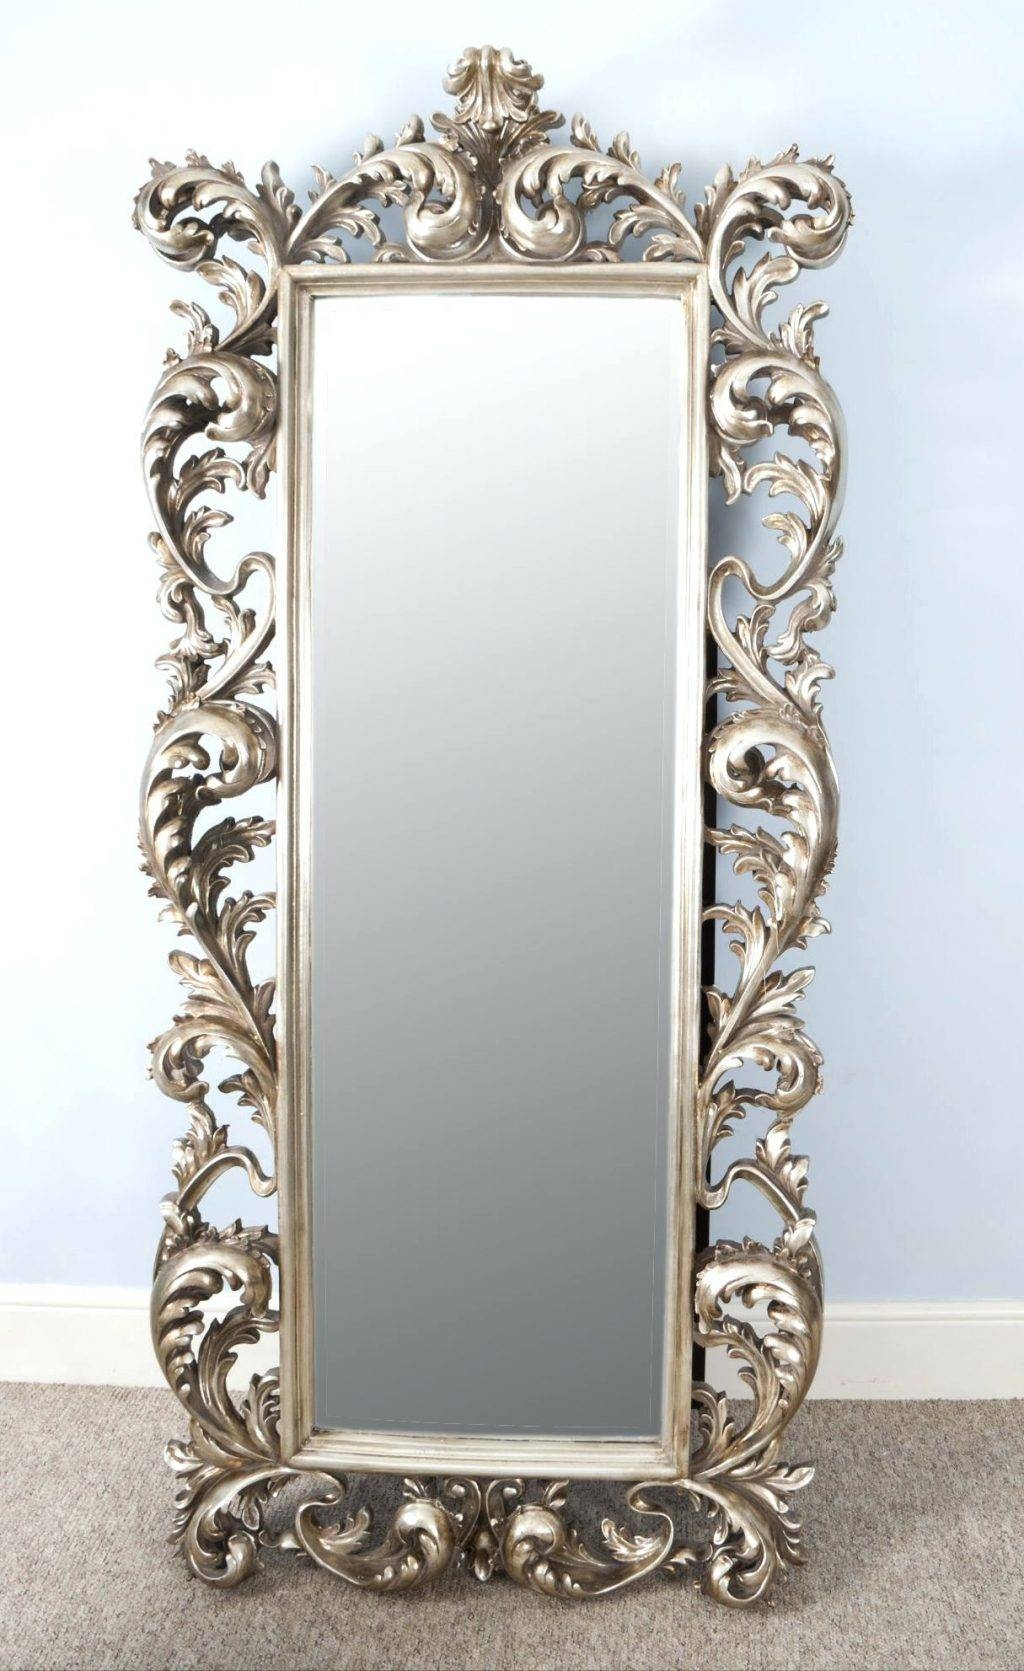 Wall Mirrors ~ Stunning Rococo Antique Style Champagne Silver inside Champagne Silver Mirrors (Image 15 of 15)